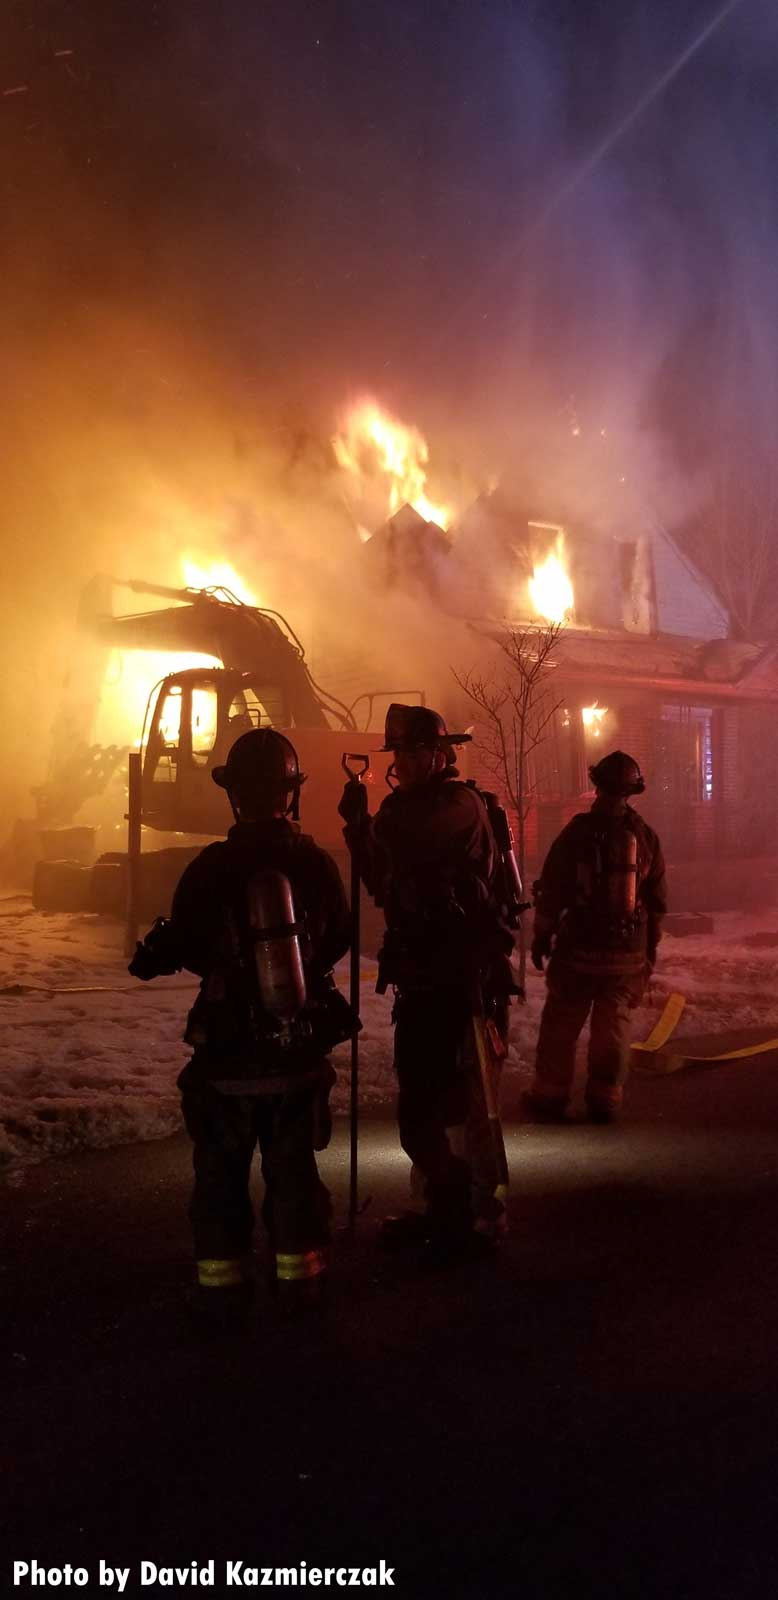 Firefighters on scene as flames from the home seem to impinge on an excavator